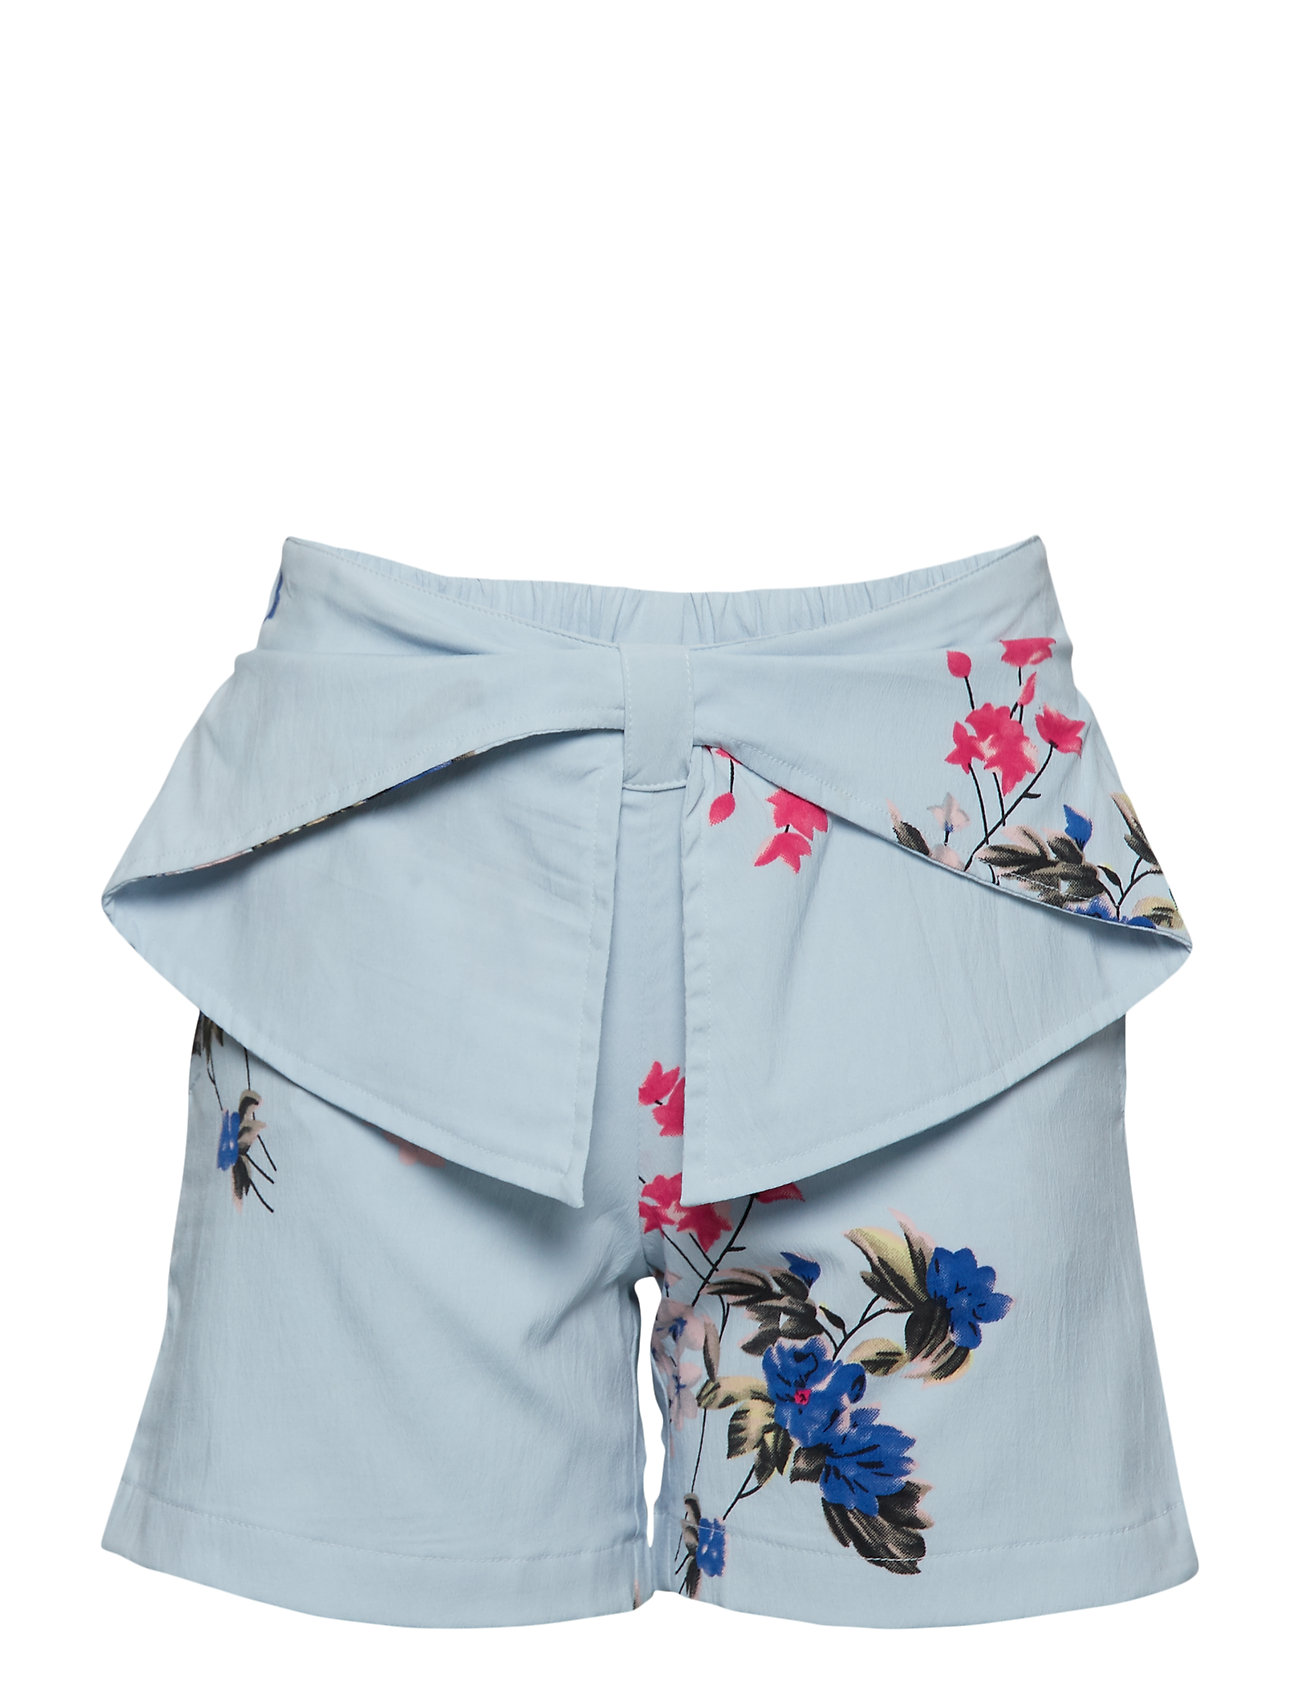 The New KERSTIN SHORTS - SKYWAY